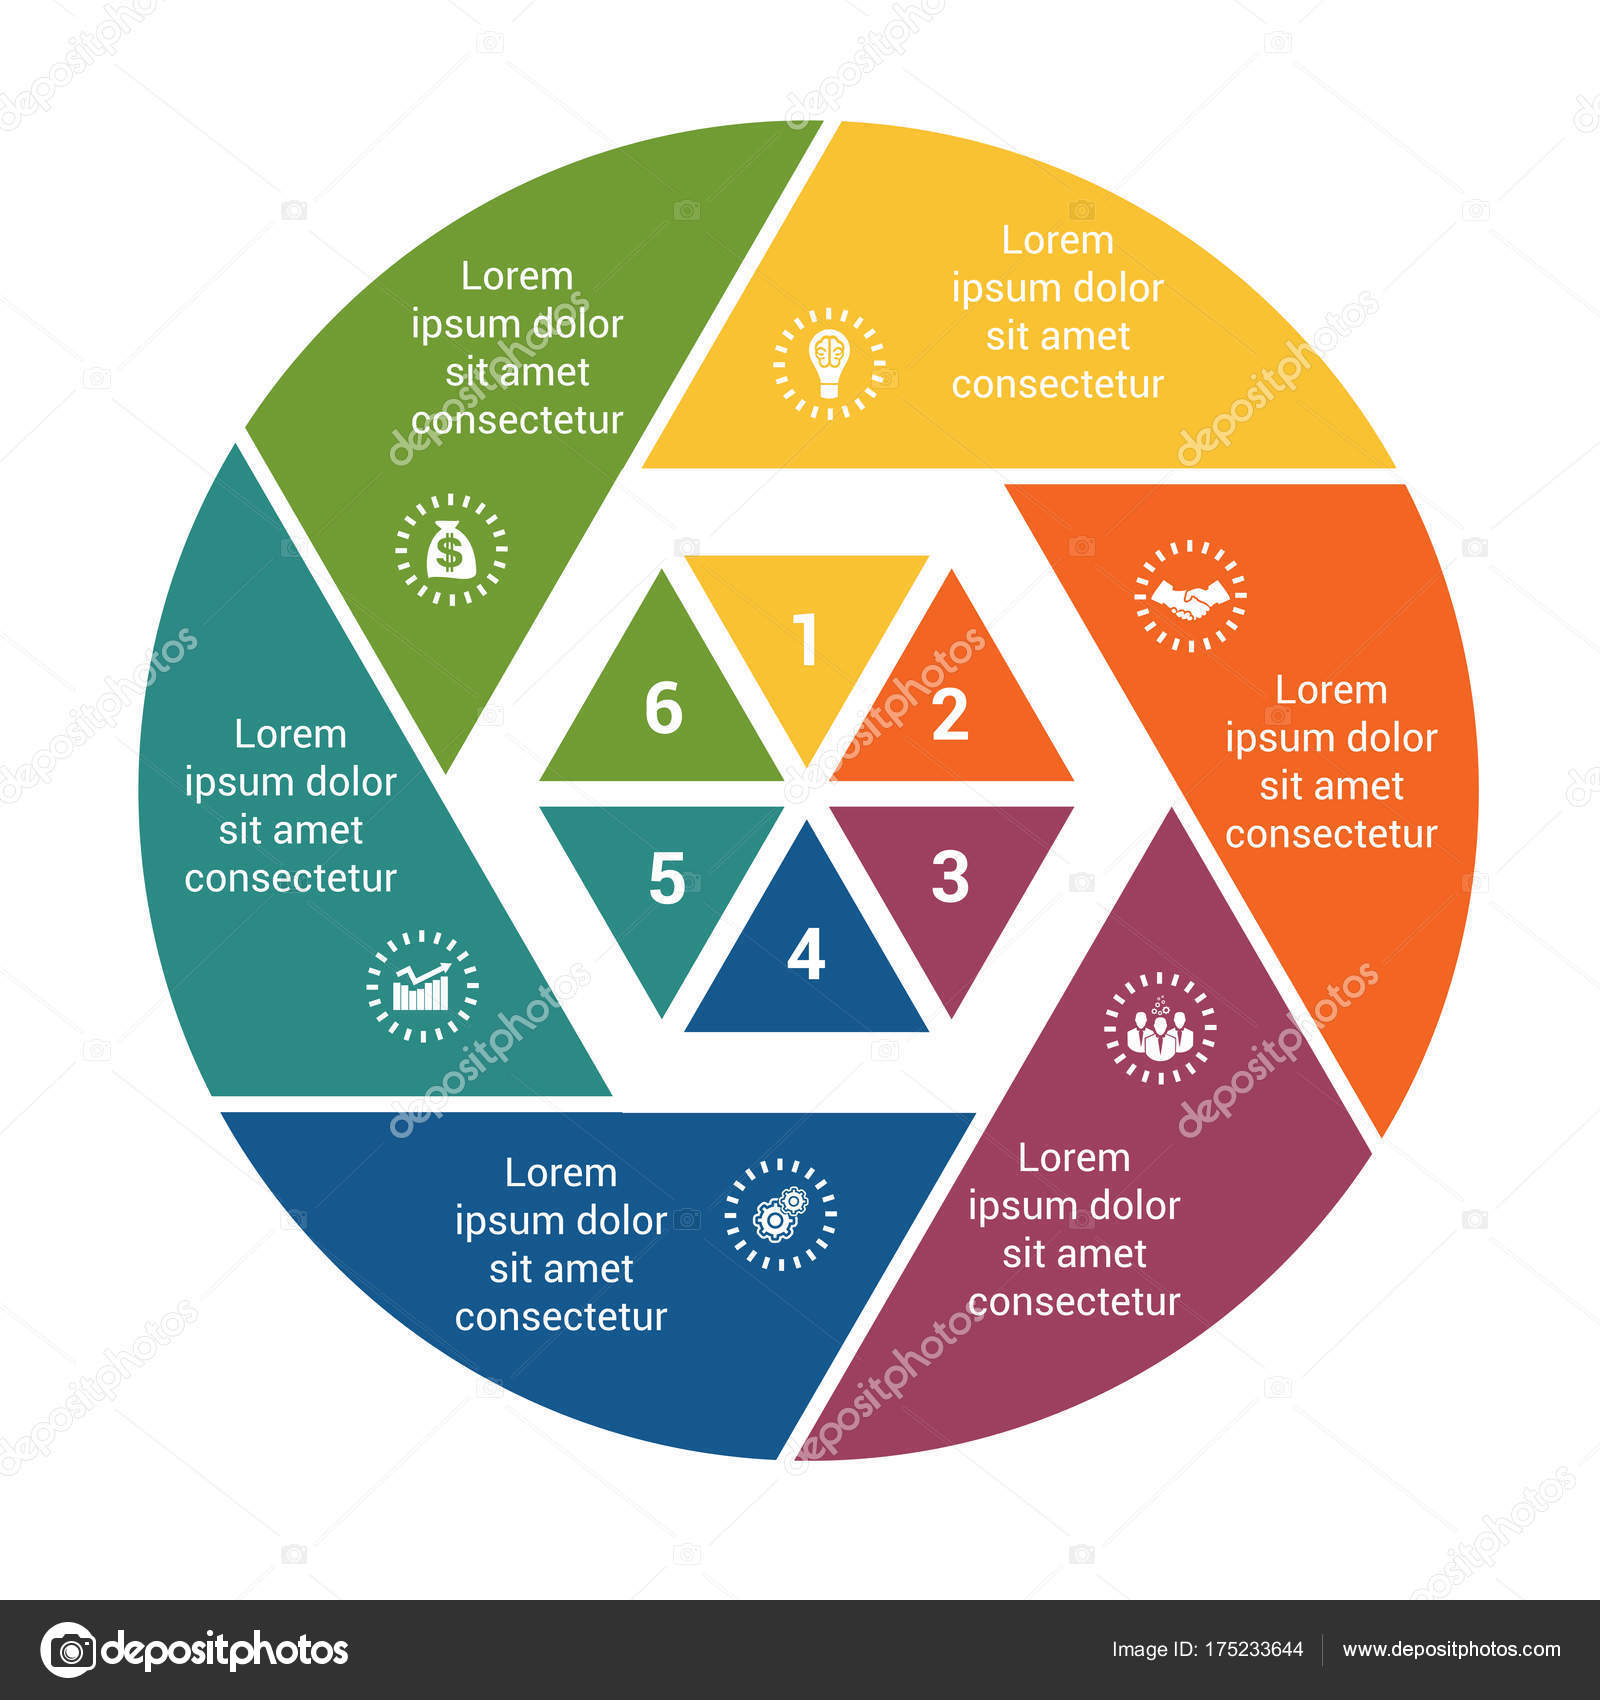 2d pie chart images free any chart examples 2d pie chart choice image free any chart examples 2d pie chart choice image free any nvjuhfo Images